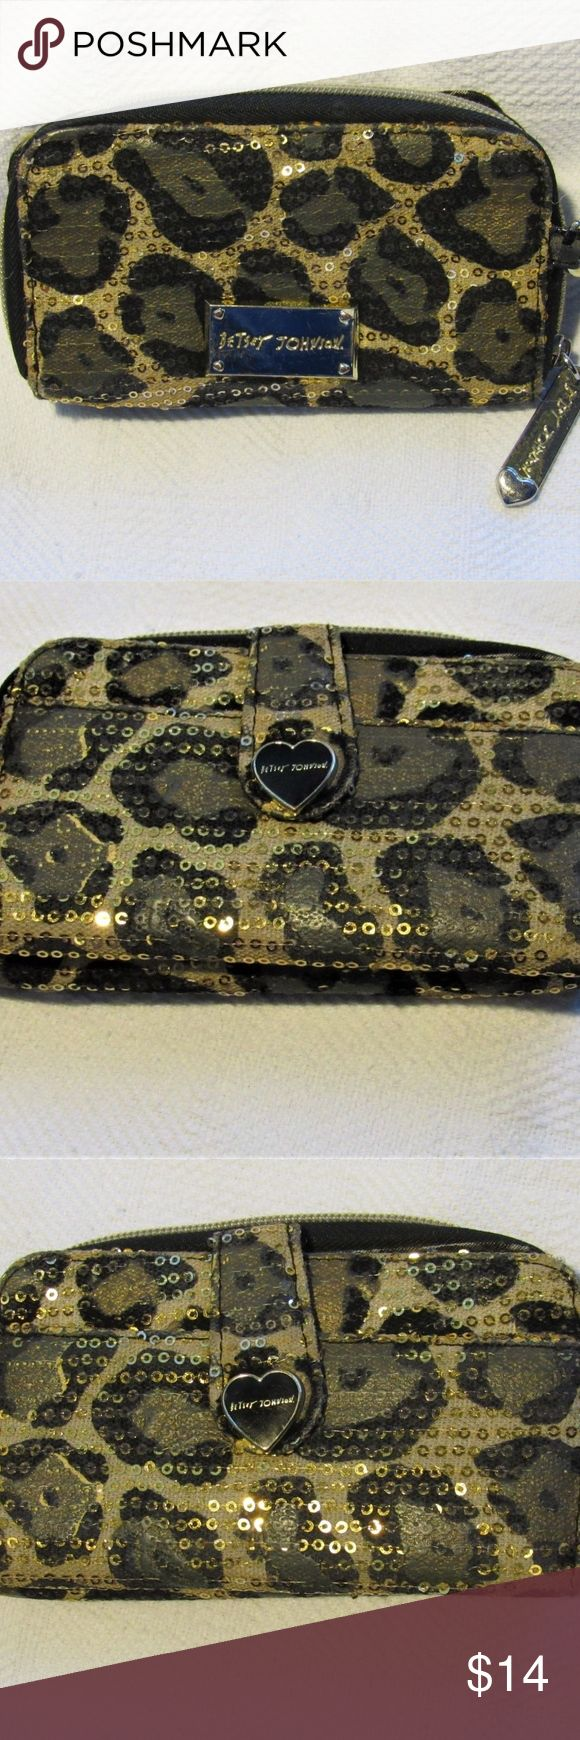 """Betsey Johnson Animal Print Sequin Zip Up Wallet Betsey Johnson Animal Print Zip Up Wallet Gold Sequins.  In good pre-owned condition. Details:   Black/Gold Sequin Zip Closure Change Compartment Gold-tone Betsey Johnson Logo Plaque on Front Logo Print Lining Open Compartment on other Side of Change Compartment with 1 slip pocket and 5 Credit Card Slots Exterior slip pocket under snap closure Measures Approximately 6"""" W x 3.5"""" H x 1"""" D  From a Smoke Free/Pet Free Home Betsey Johnson Bags…"""